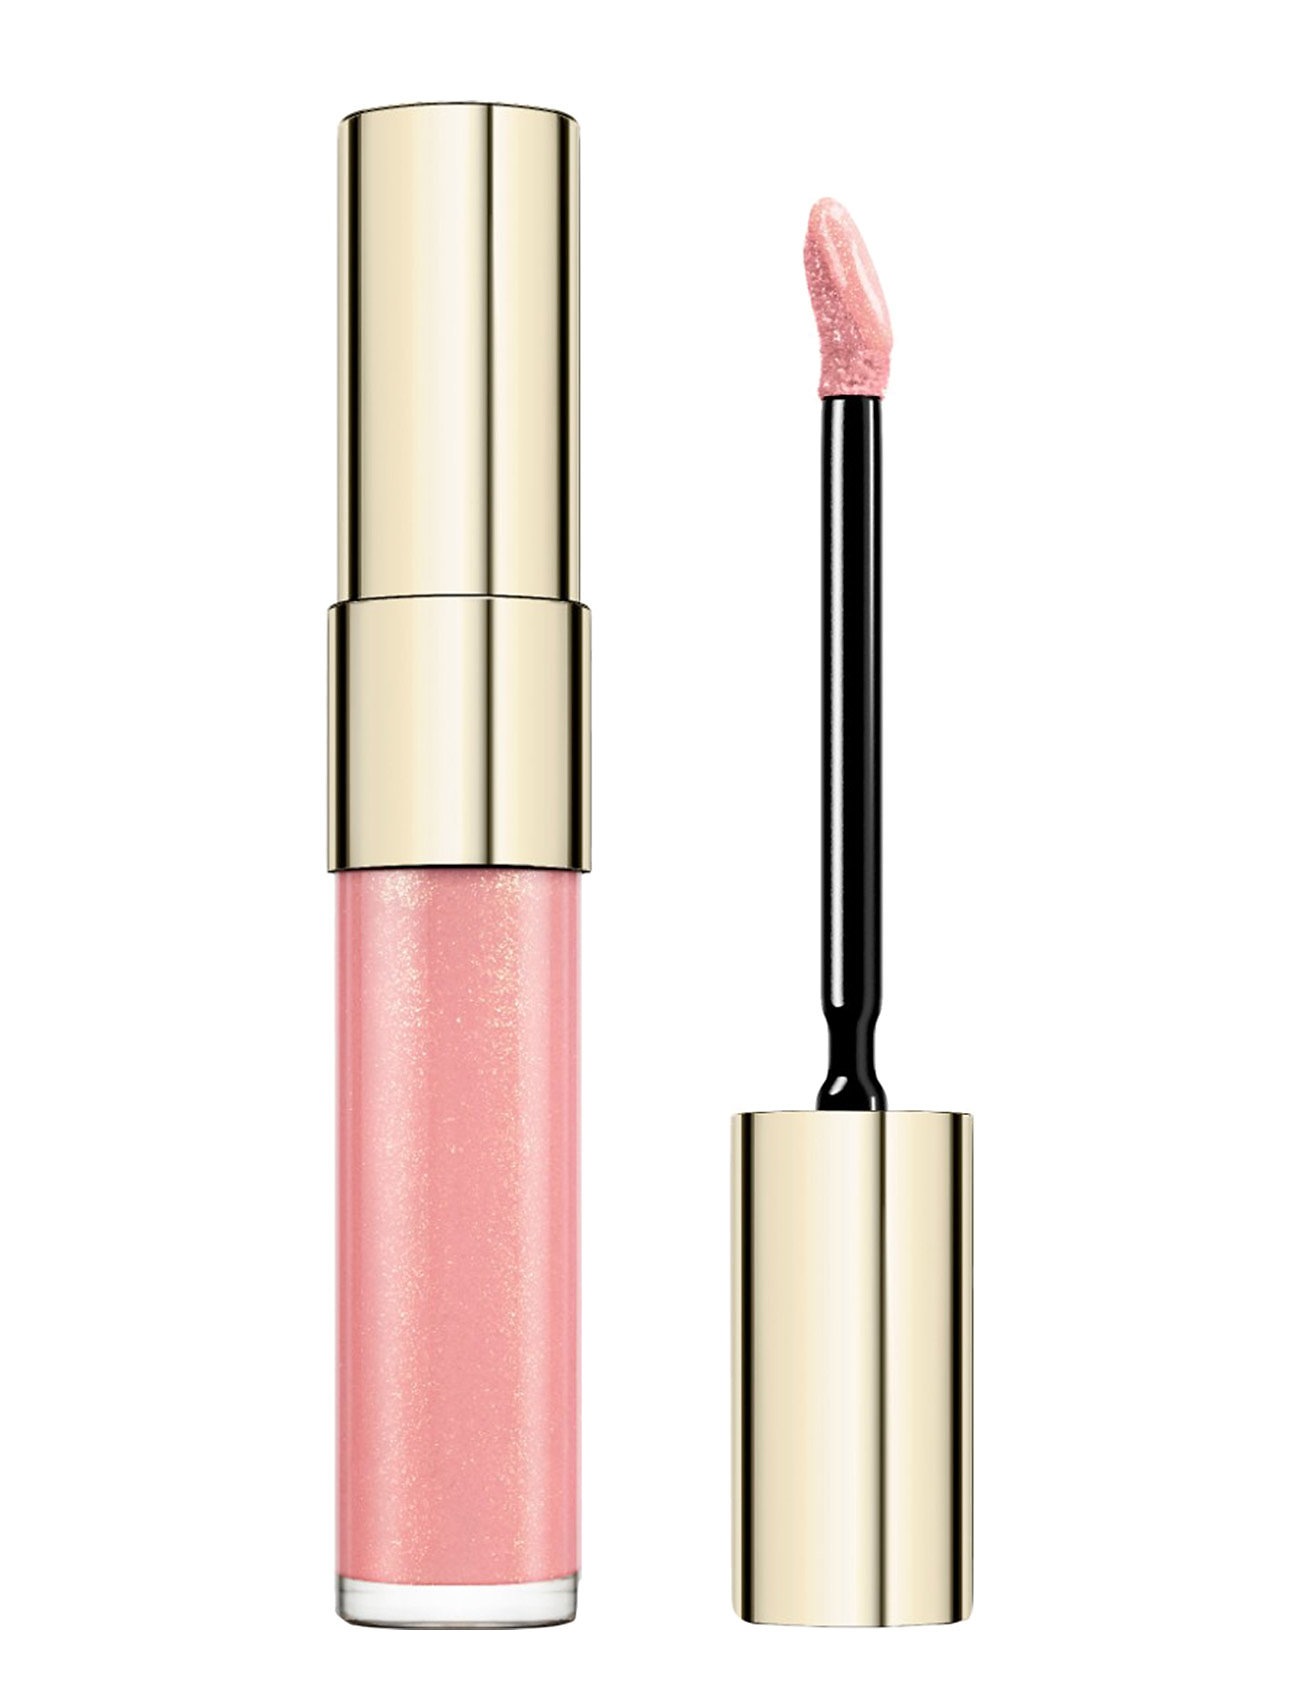 Image of Illumination Lips 02 Lipgloss Makeup Lyserød Helena Rubinstein (3069875521)